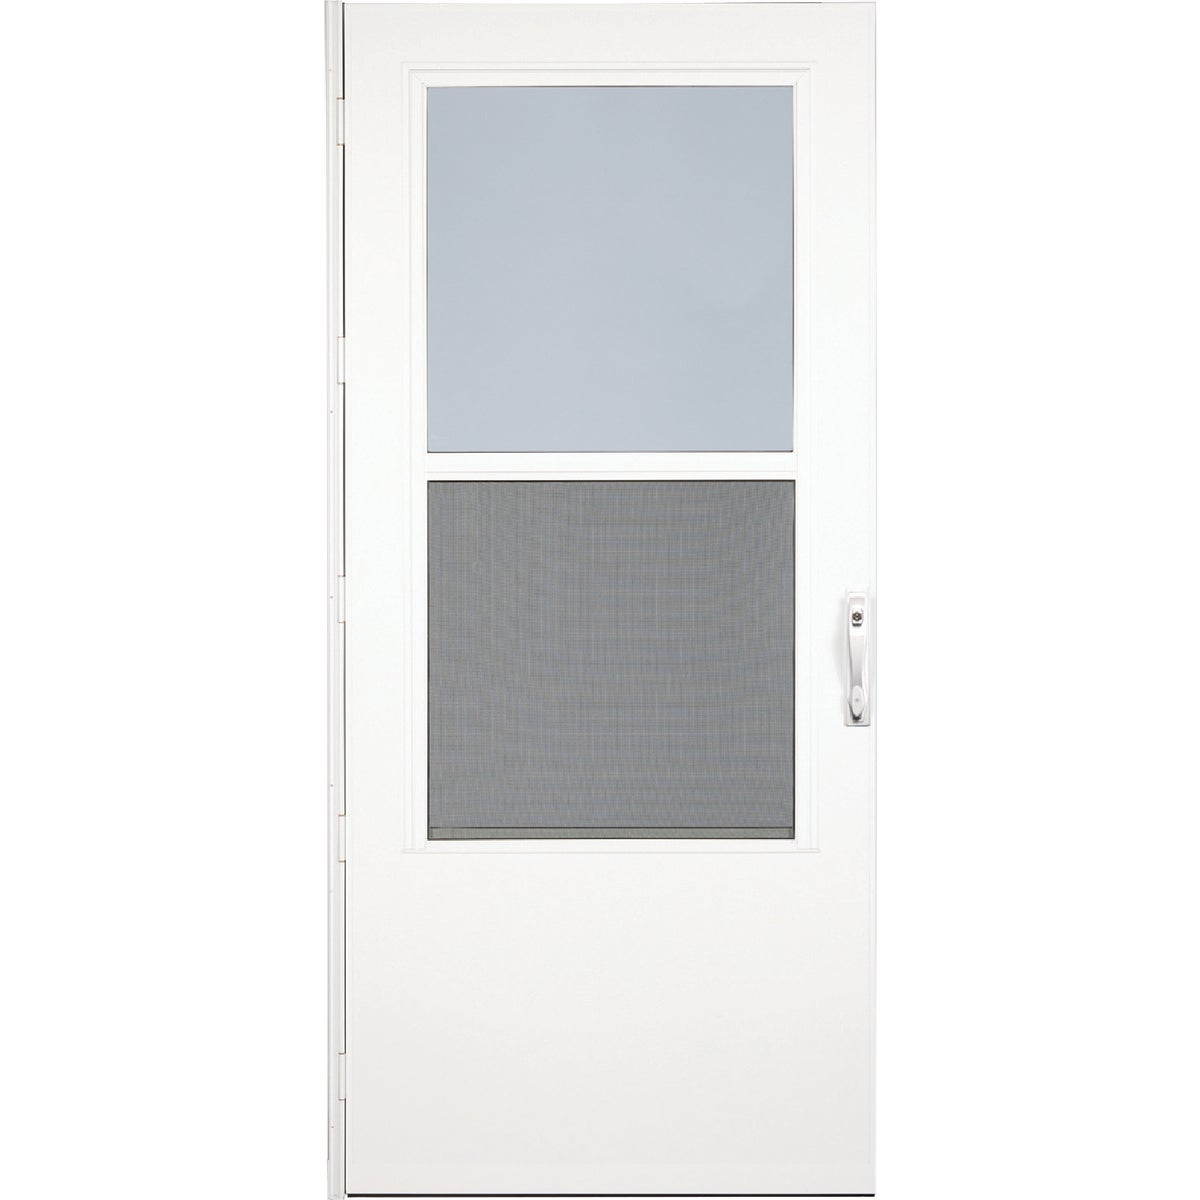 "32"" WHT SELF-STORM DOOR - 37050031 by Larson Mfg Co"